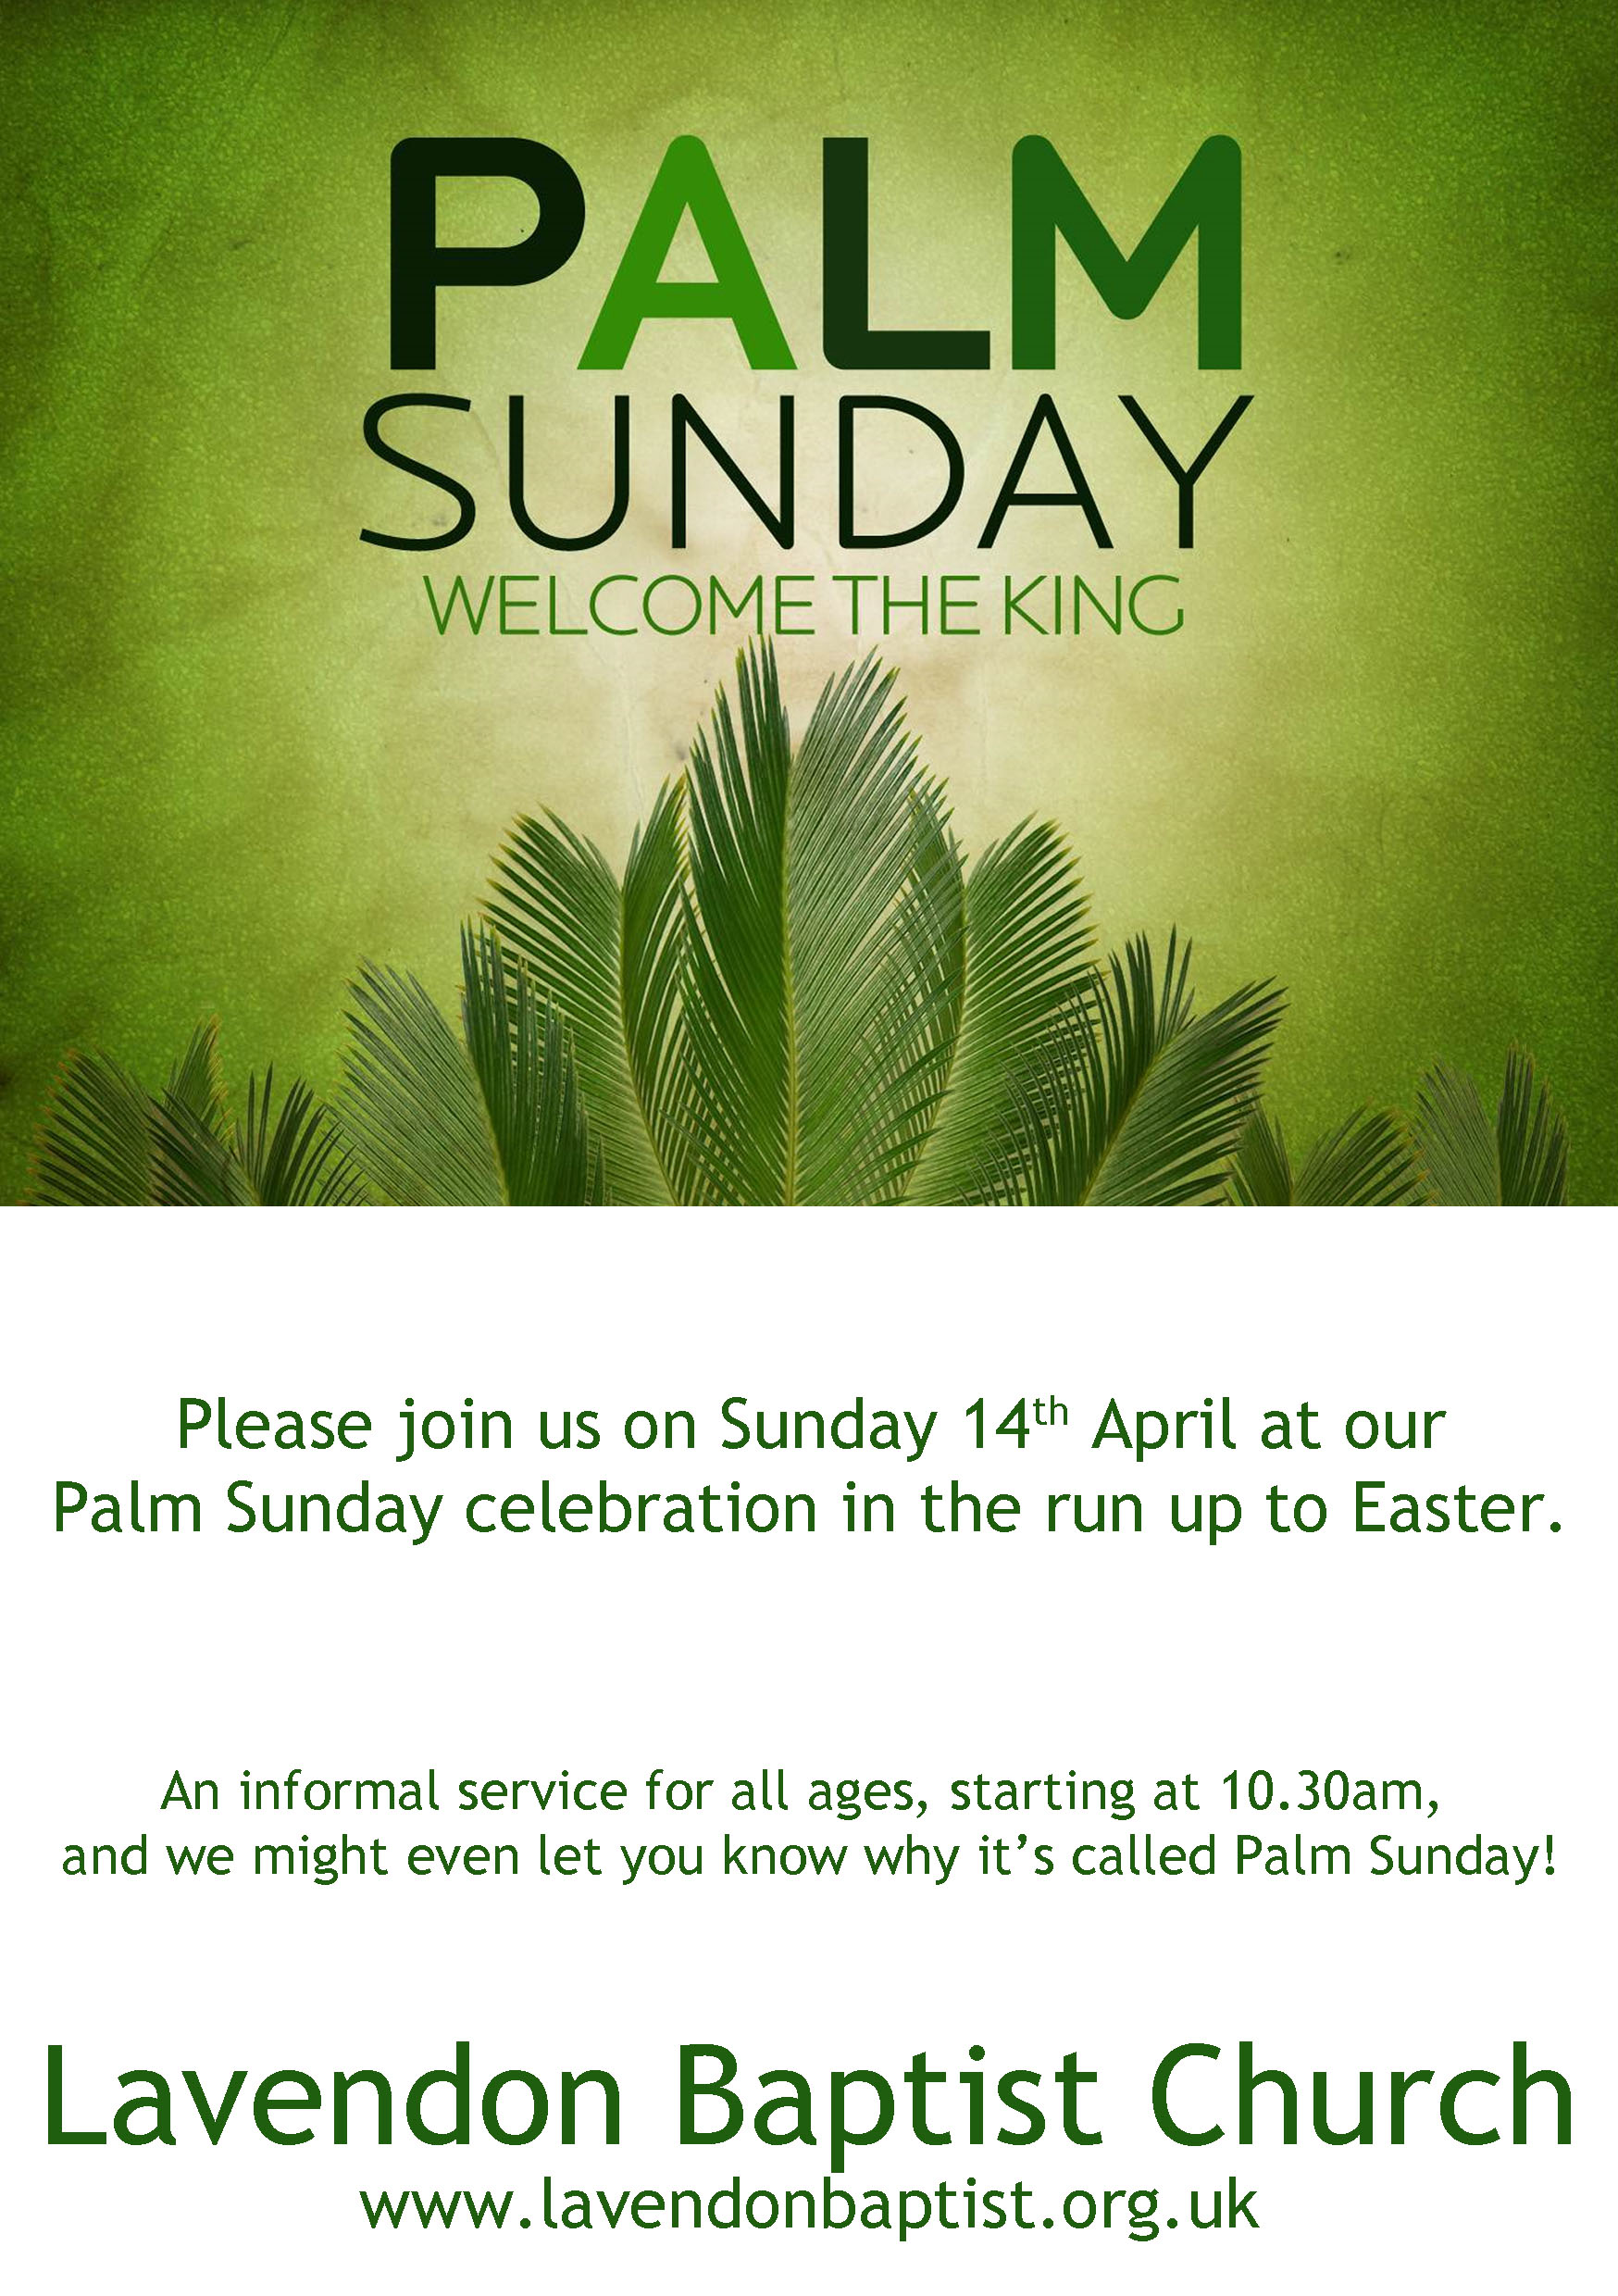 Palm Sunday (14th April)